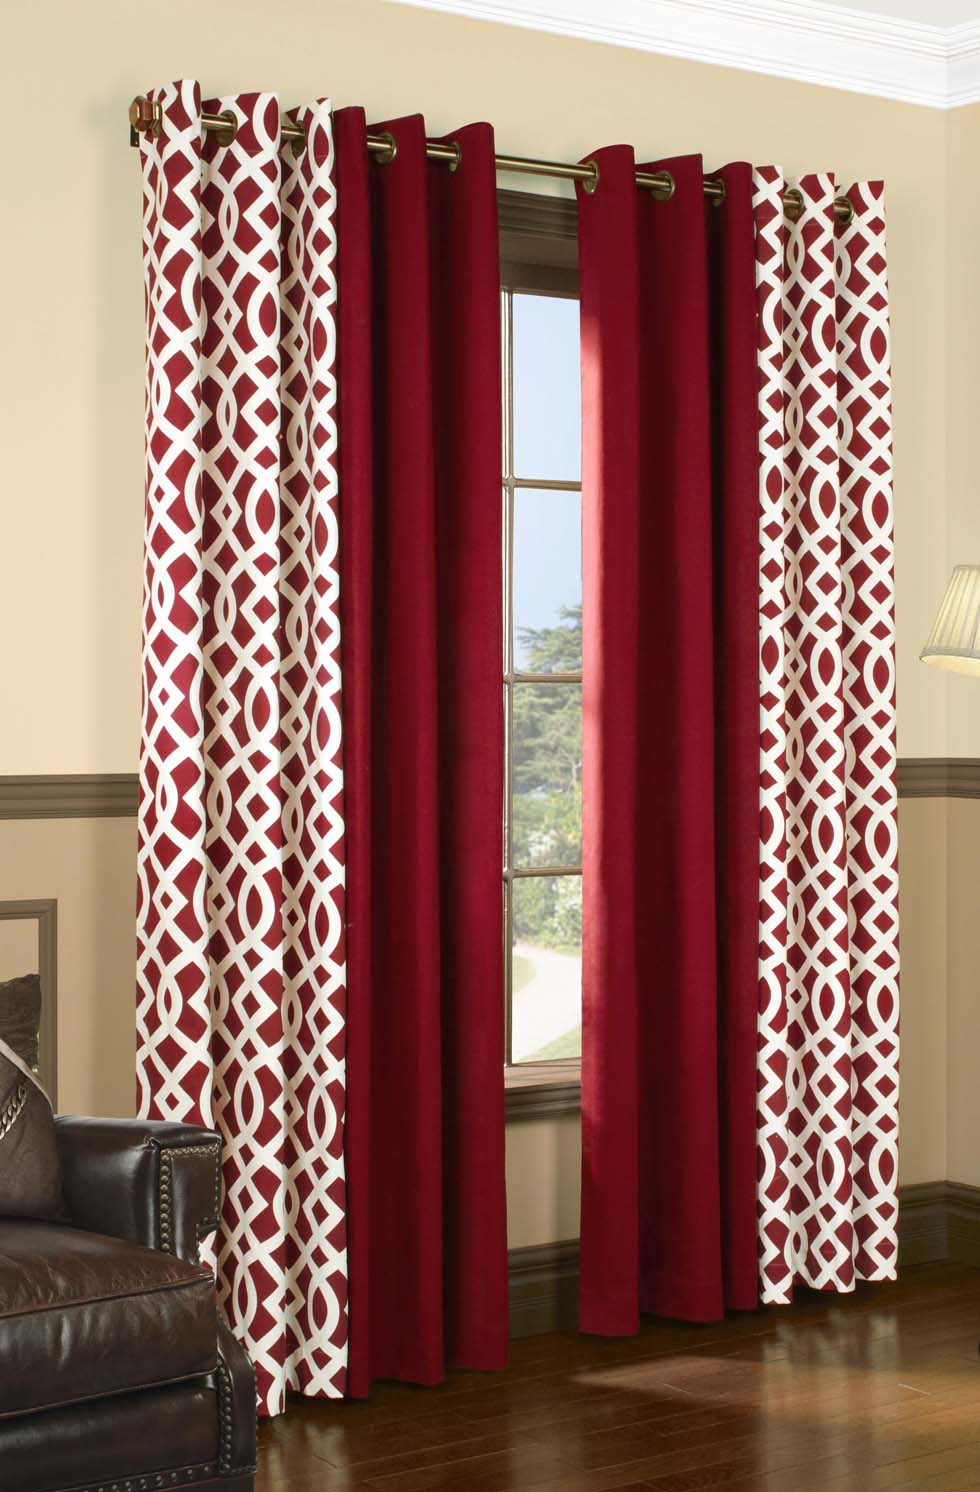 Red-Trellis-and-Weathermate-Thermal-Curtains-1 20+ Hottest Curtain Design Ideas for 2021